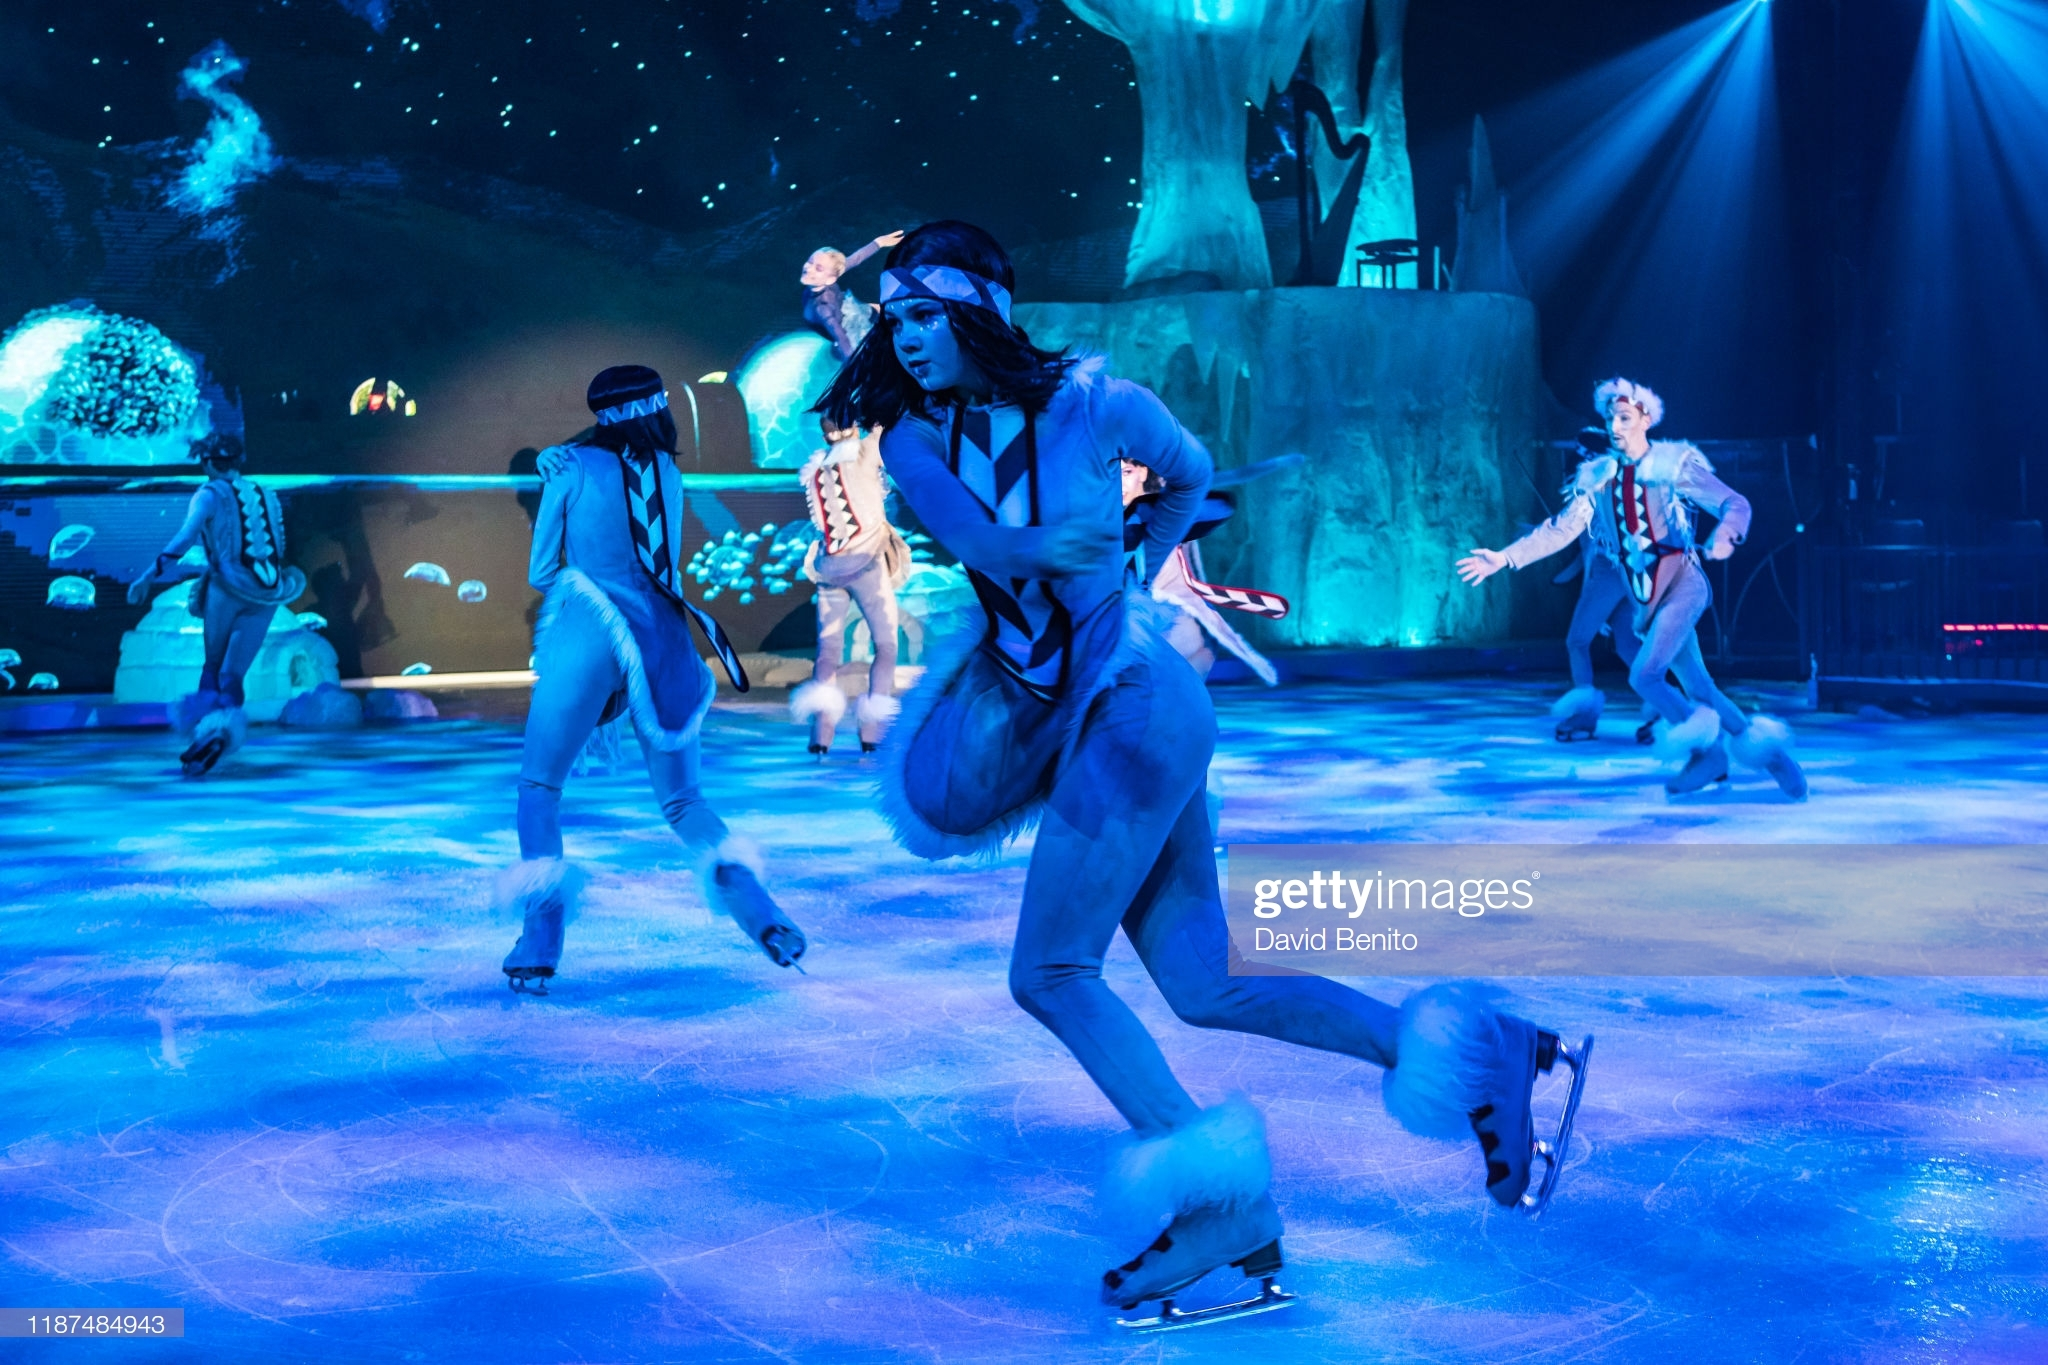 gettyimages-1187484943-2048x2048 (1)